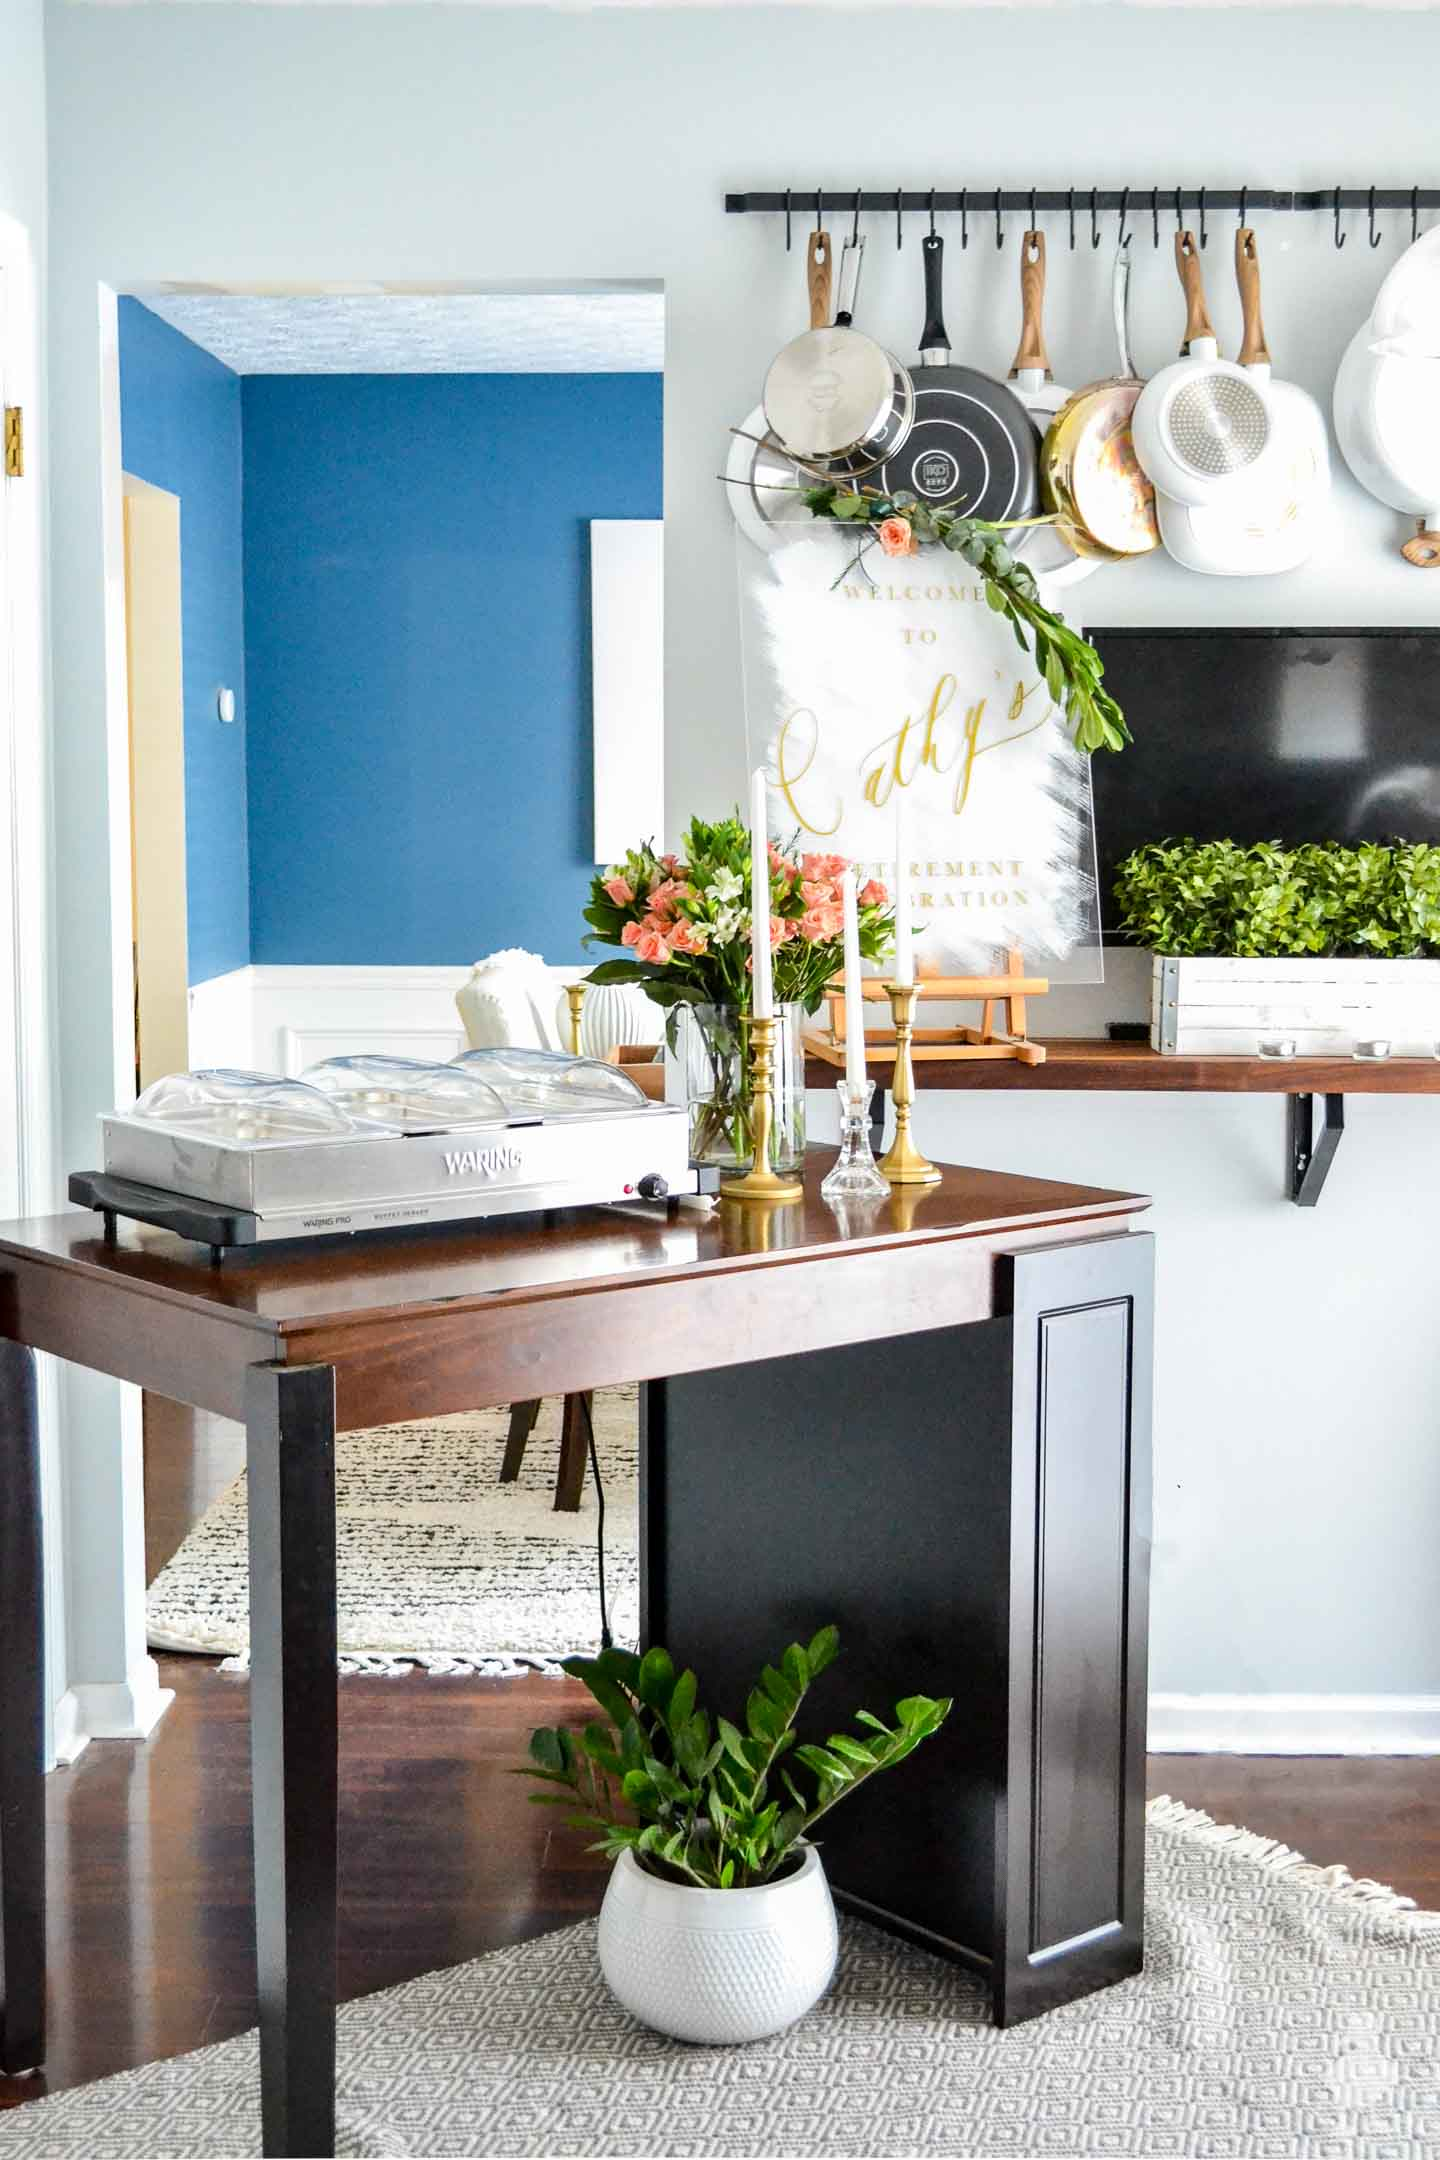 buffet setup on table with blue kitchen walls and dining room